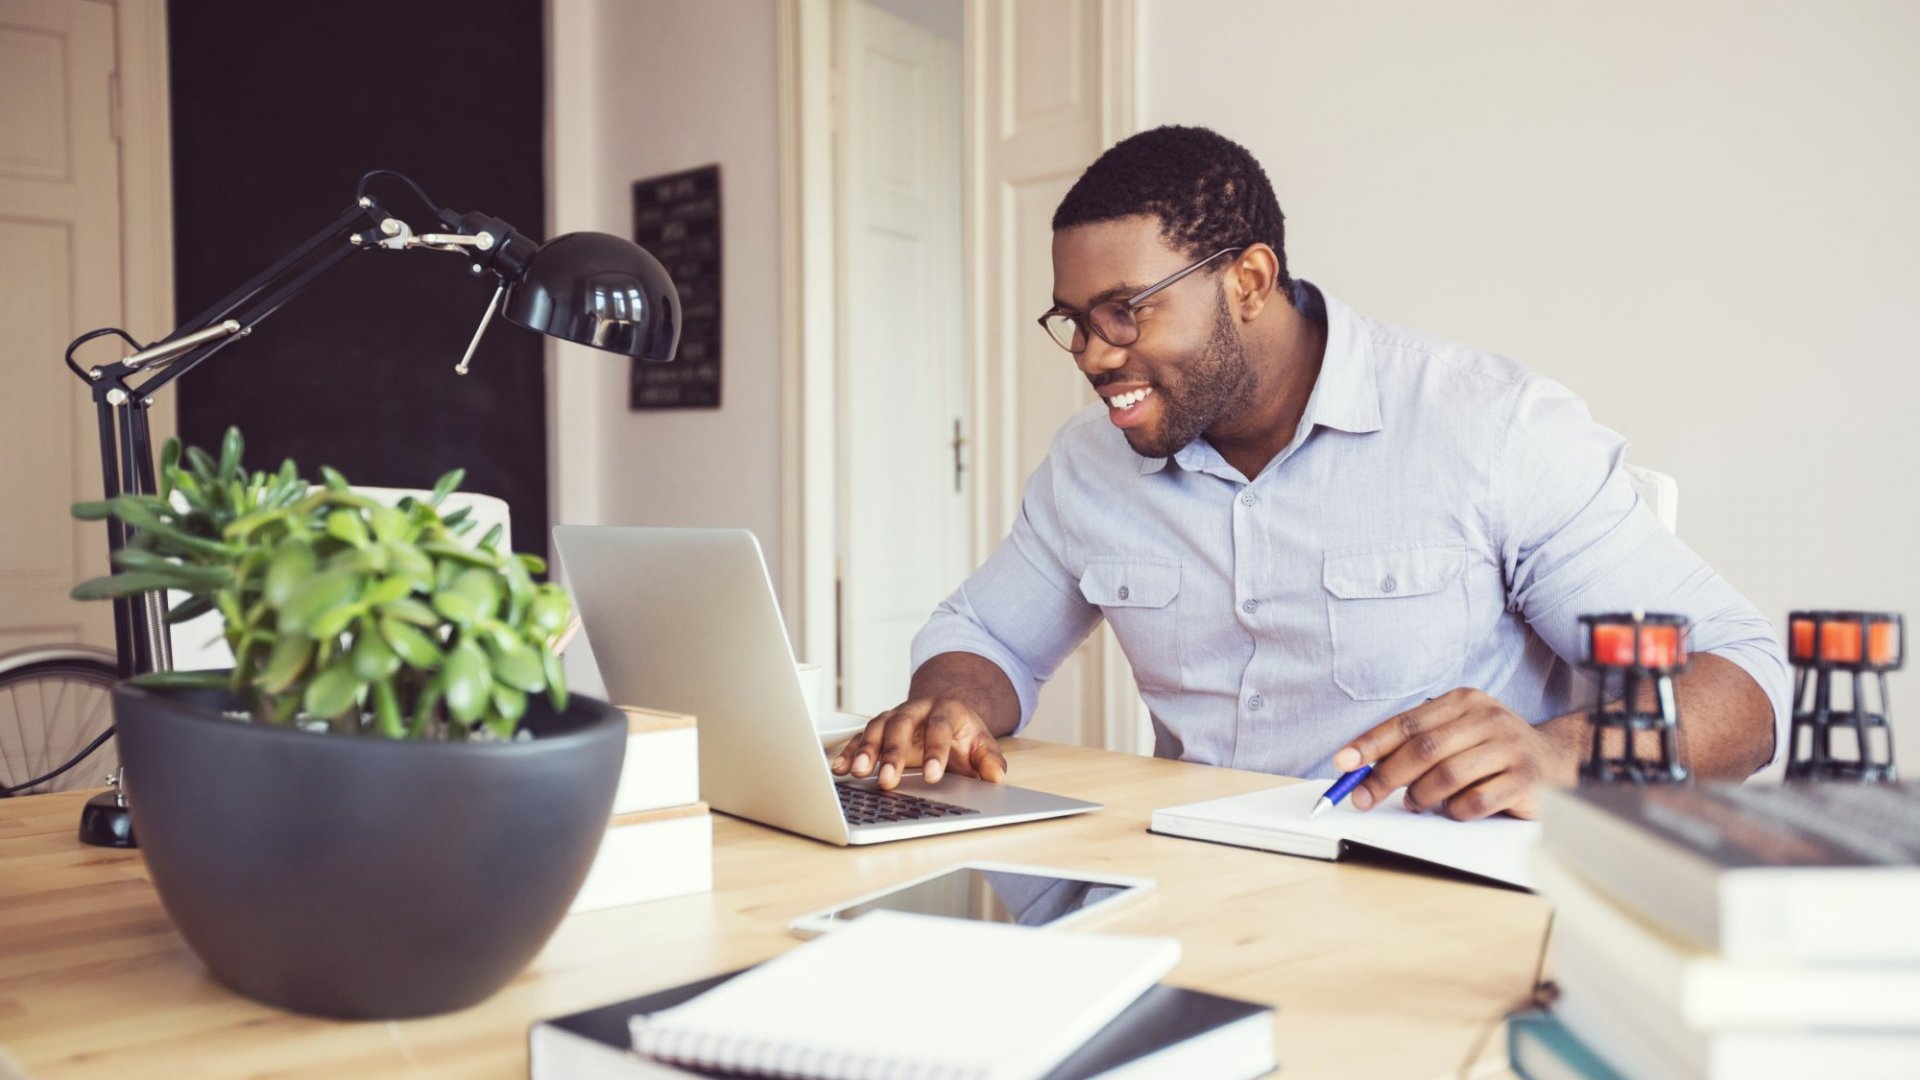 91 Percent of People Who Work at Home Are More Productive Than at Work